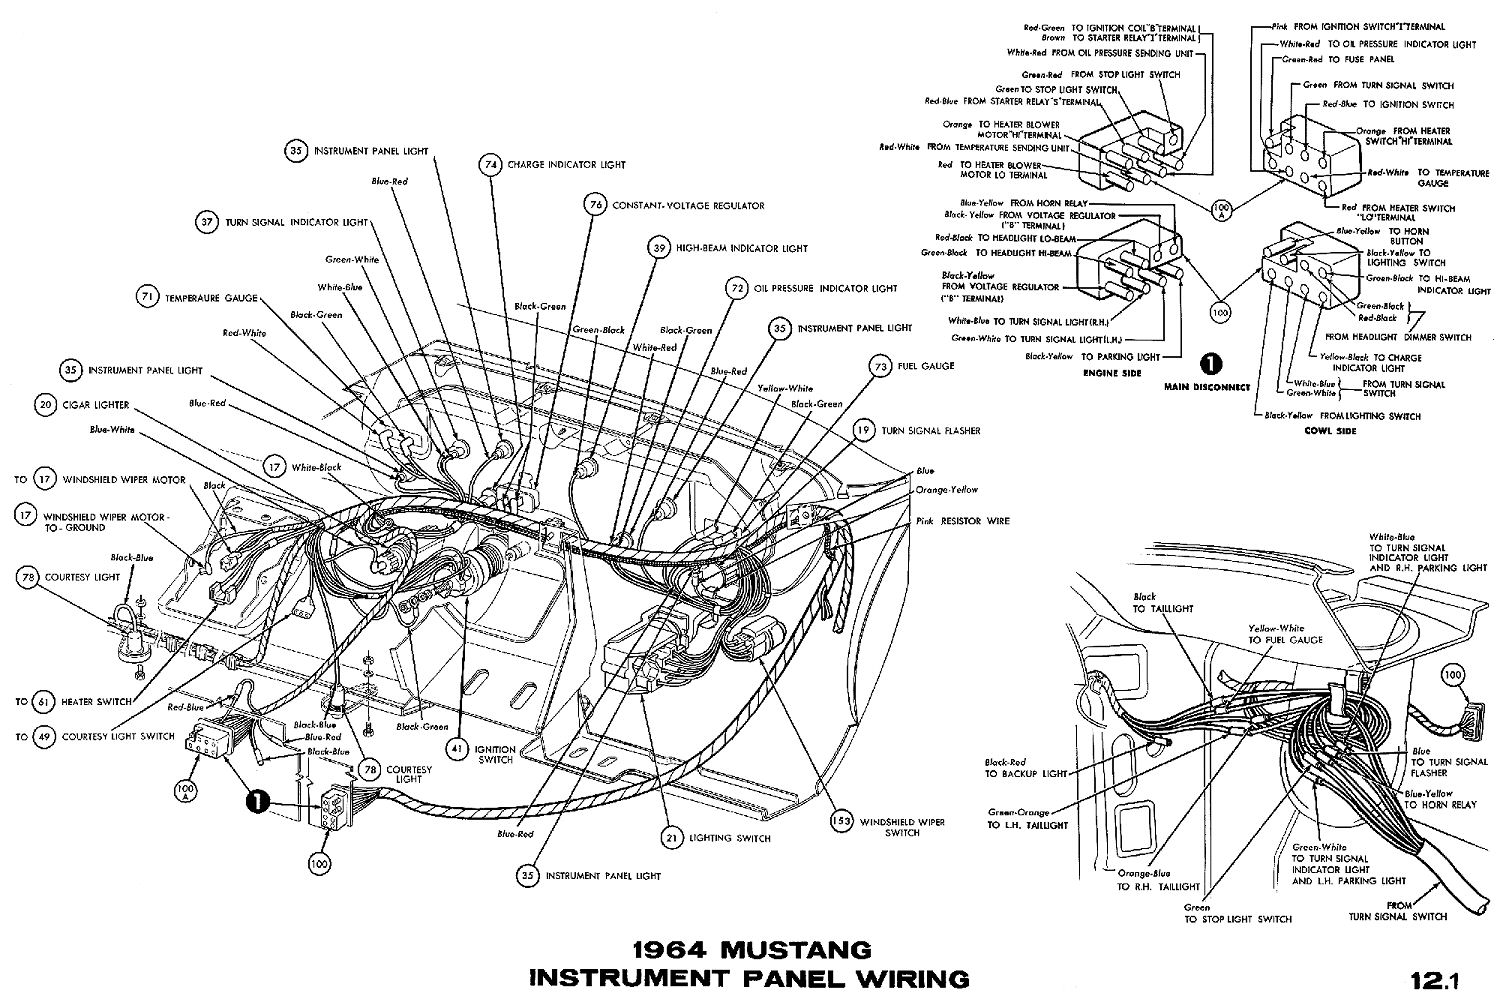 1964 mustang wiring diagrams average joe restoration rh  averagejoerestoration com 66 Mustang Dash Wiring Diagram 1967